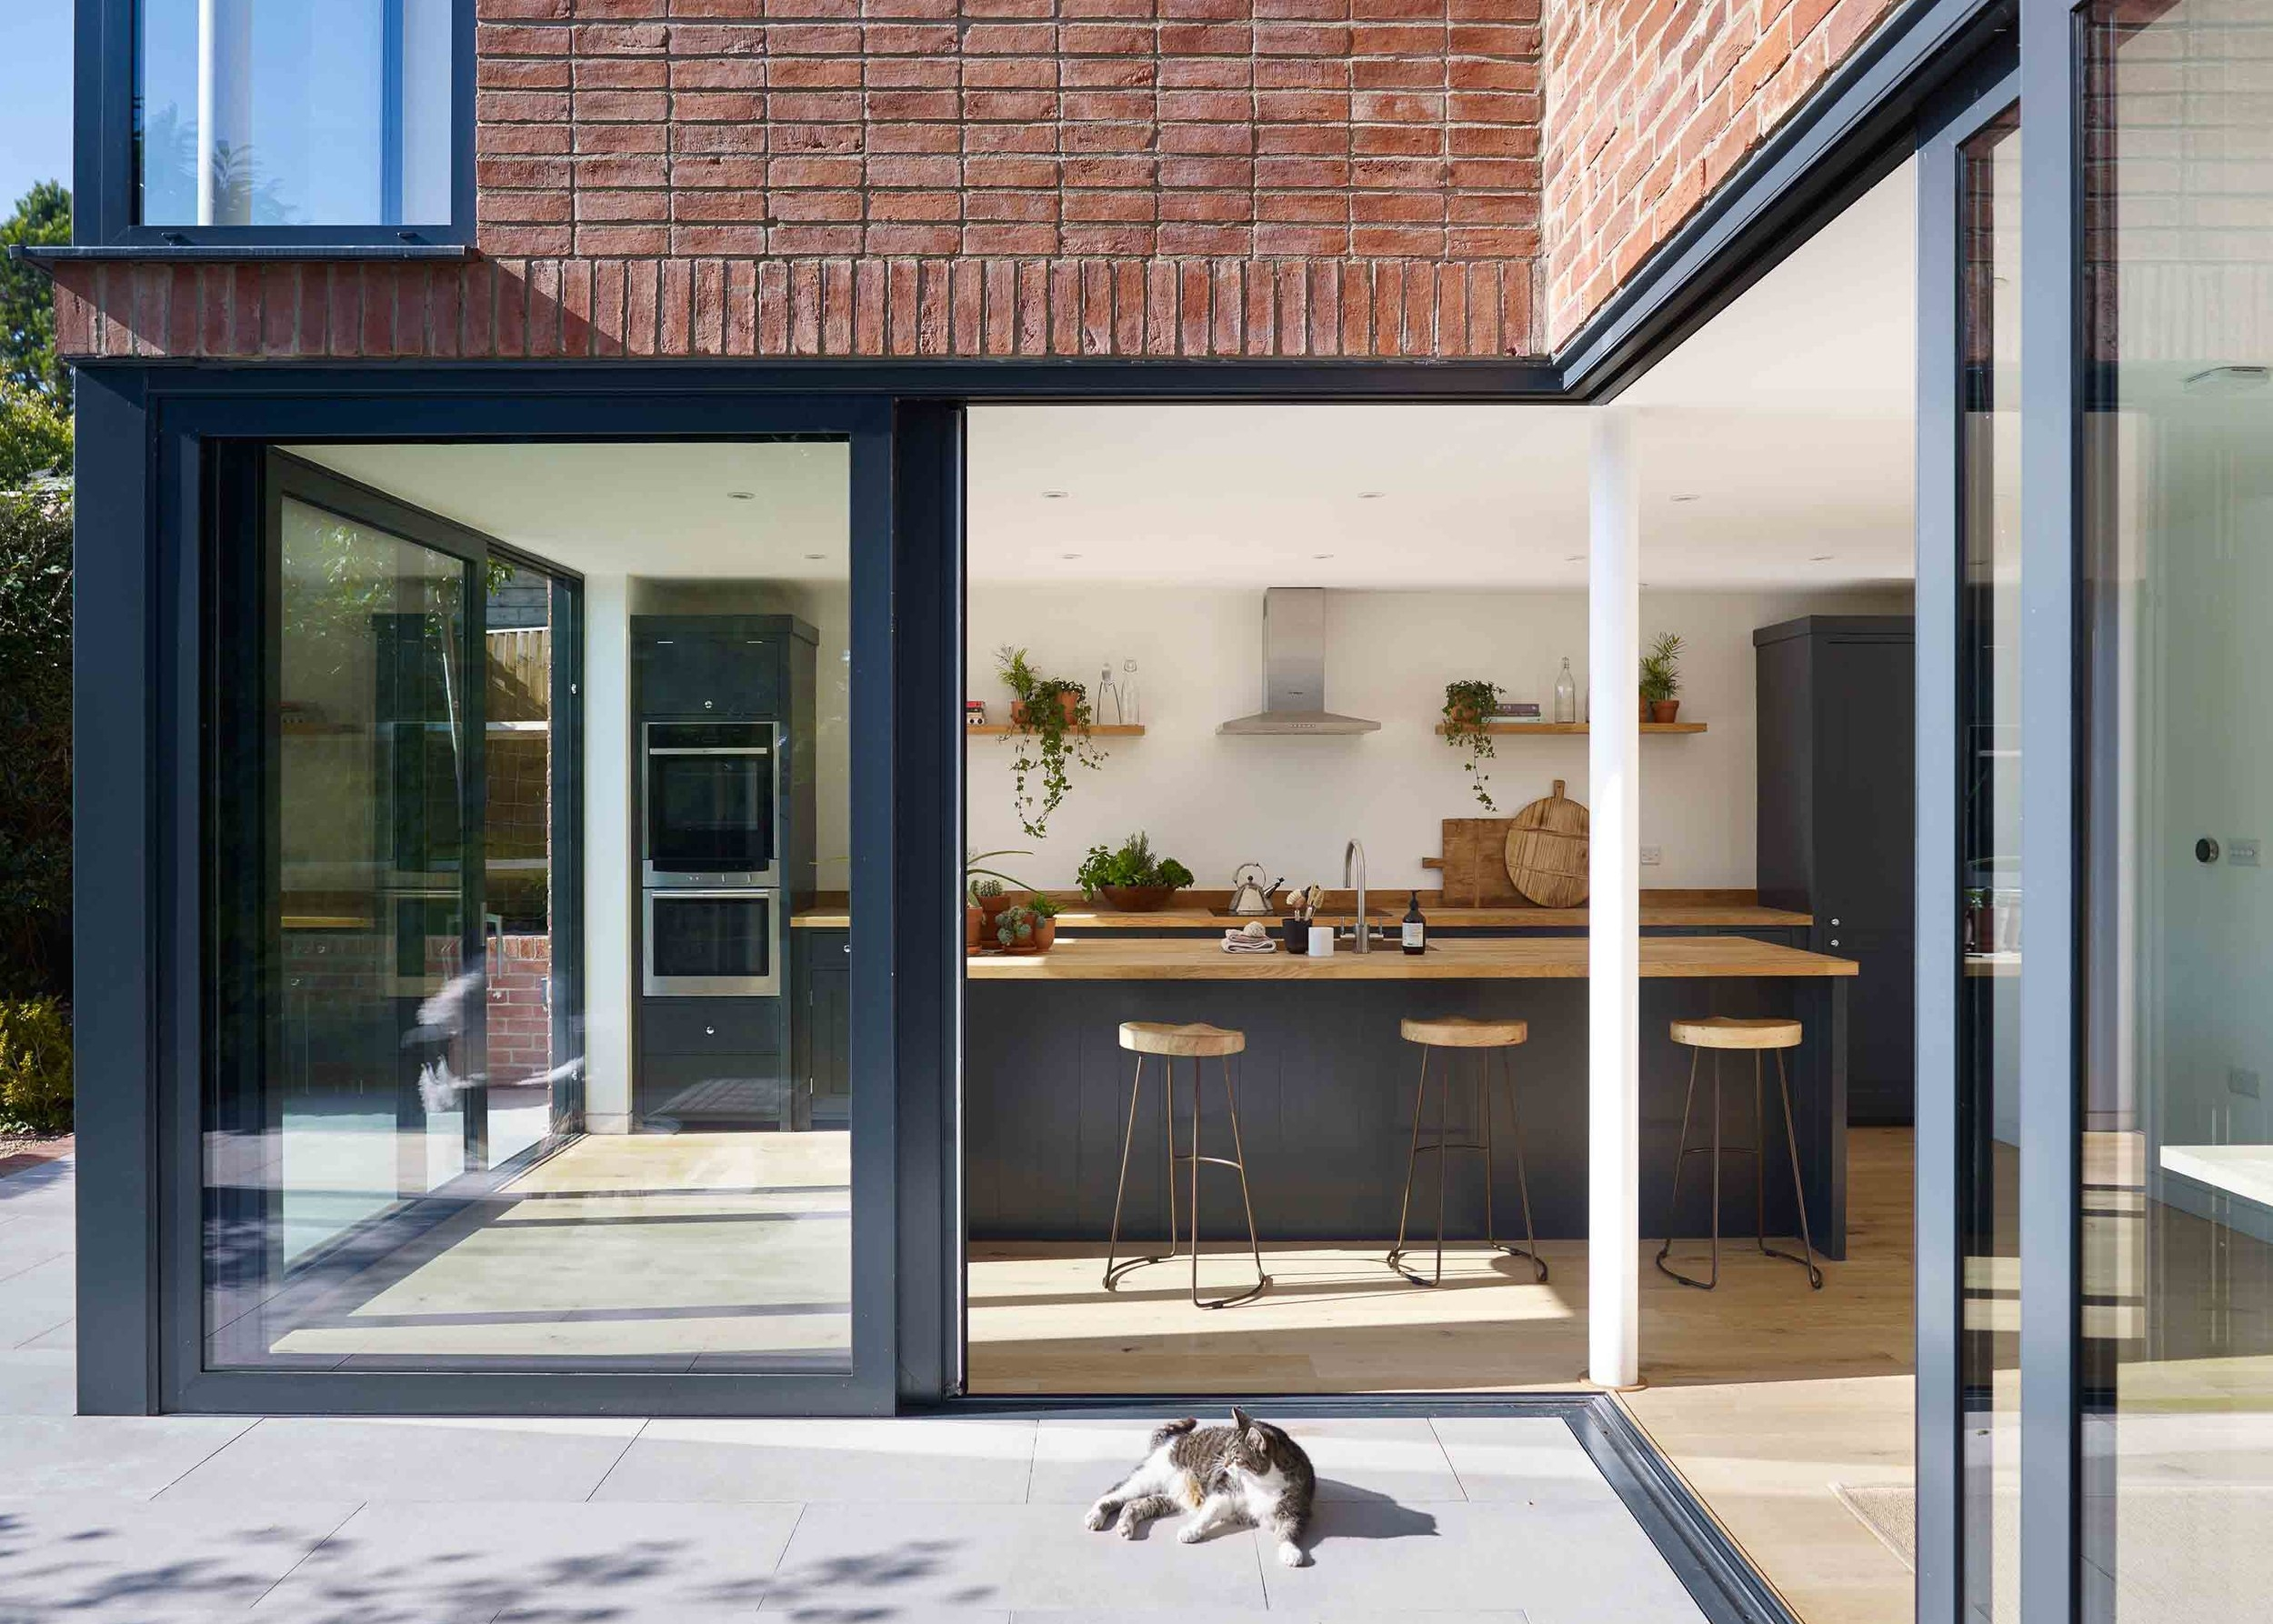 OBA_The-Brick-House_7.jpg